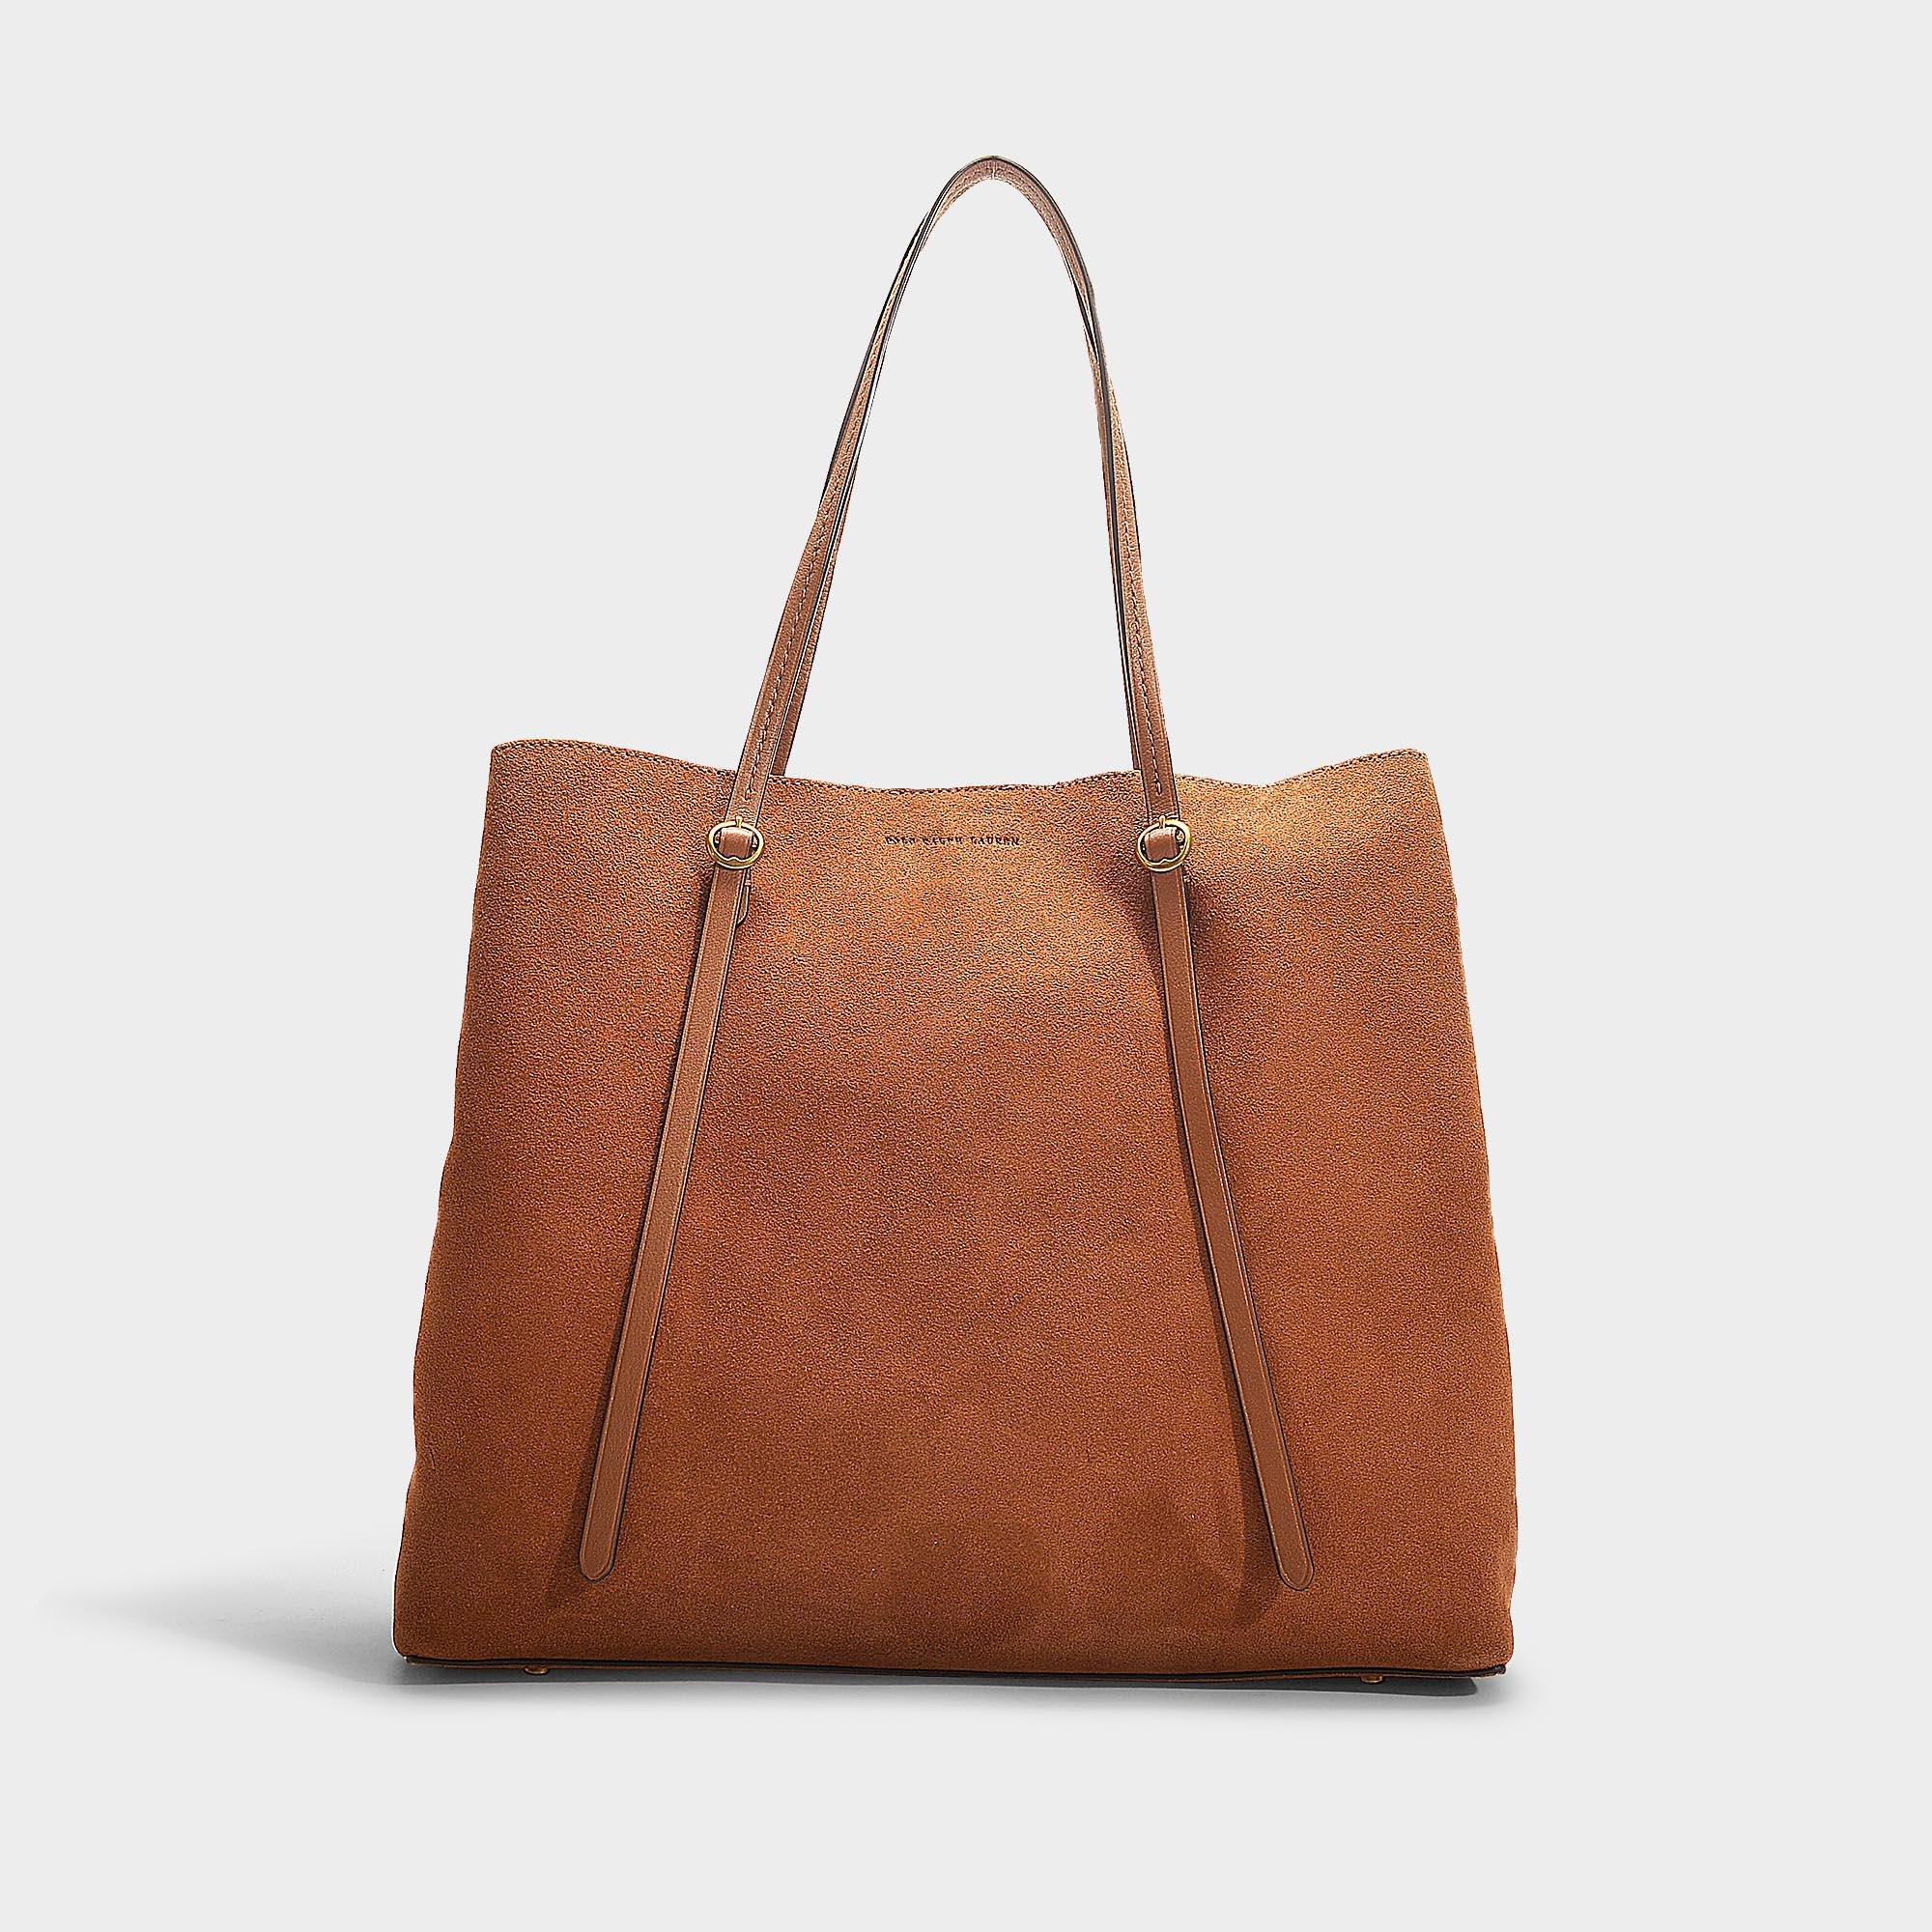 Polo Ralph Lauren Big Lennox Tote Bag In Camel Calfskin in Brown - Lyst afeddbd647